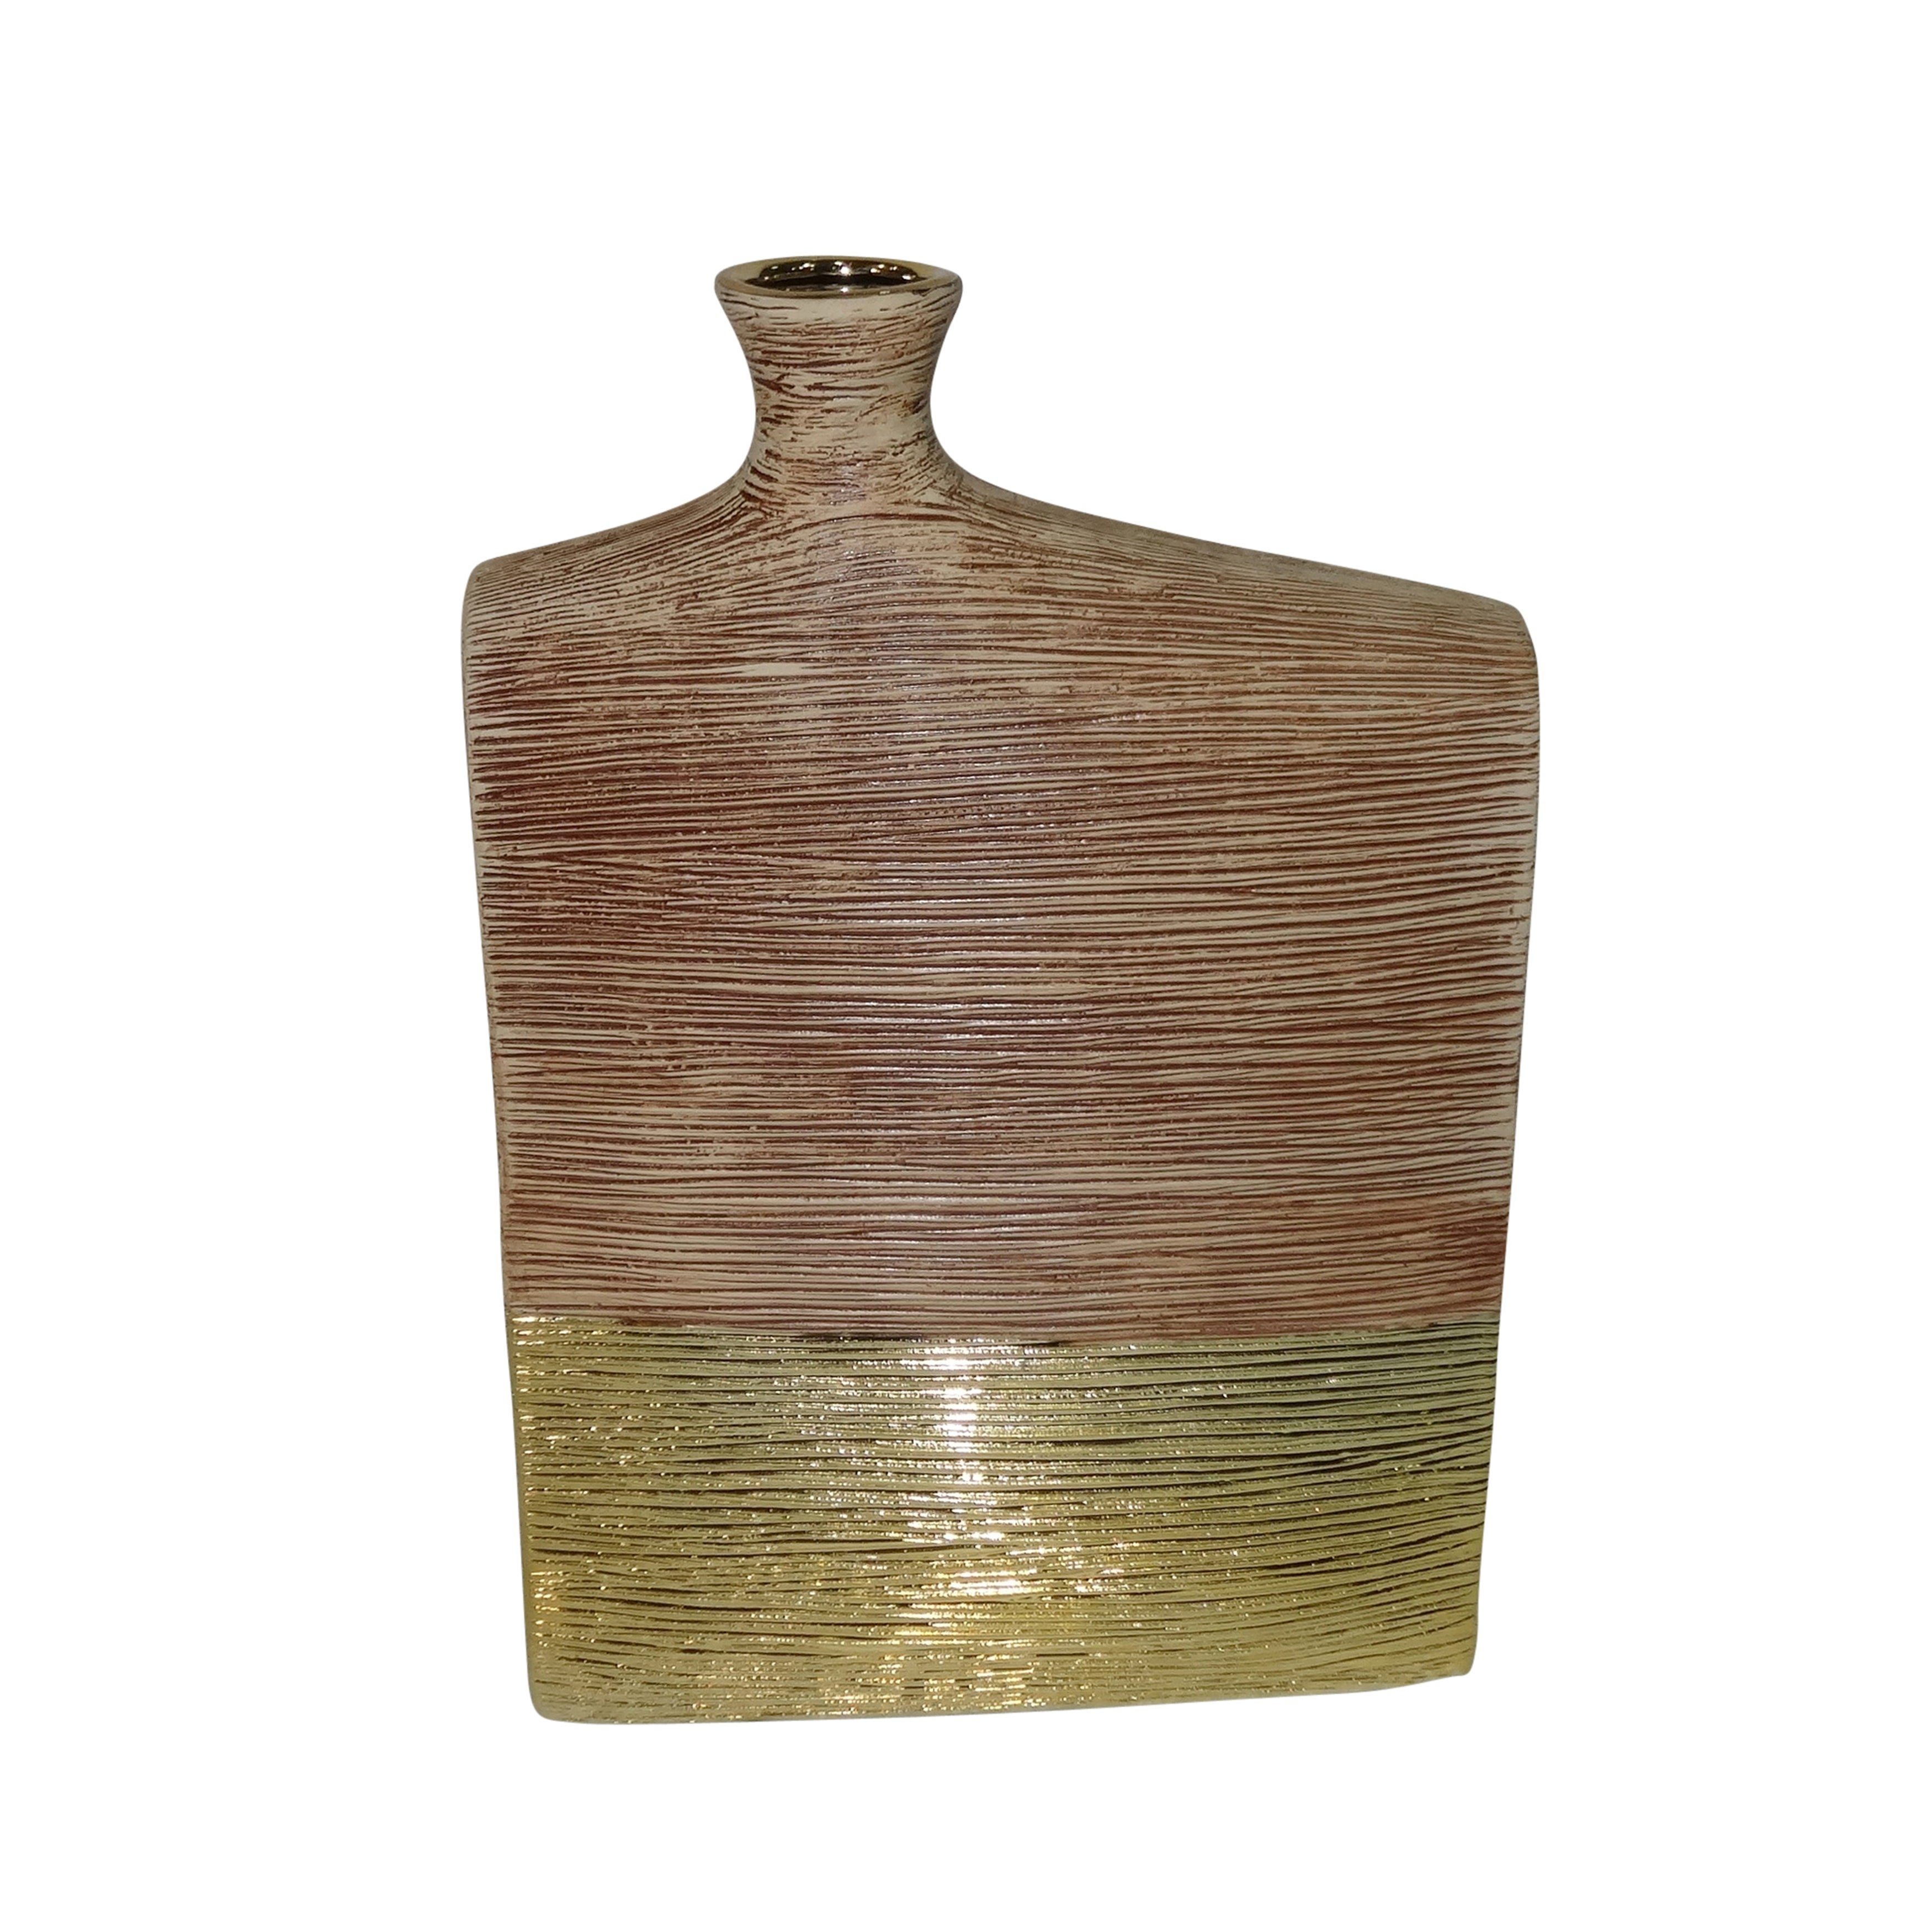 Contemporary Ceramic Vase with Narrow Neck Opening, Large, Gold and Brown